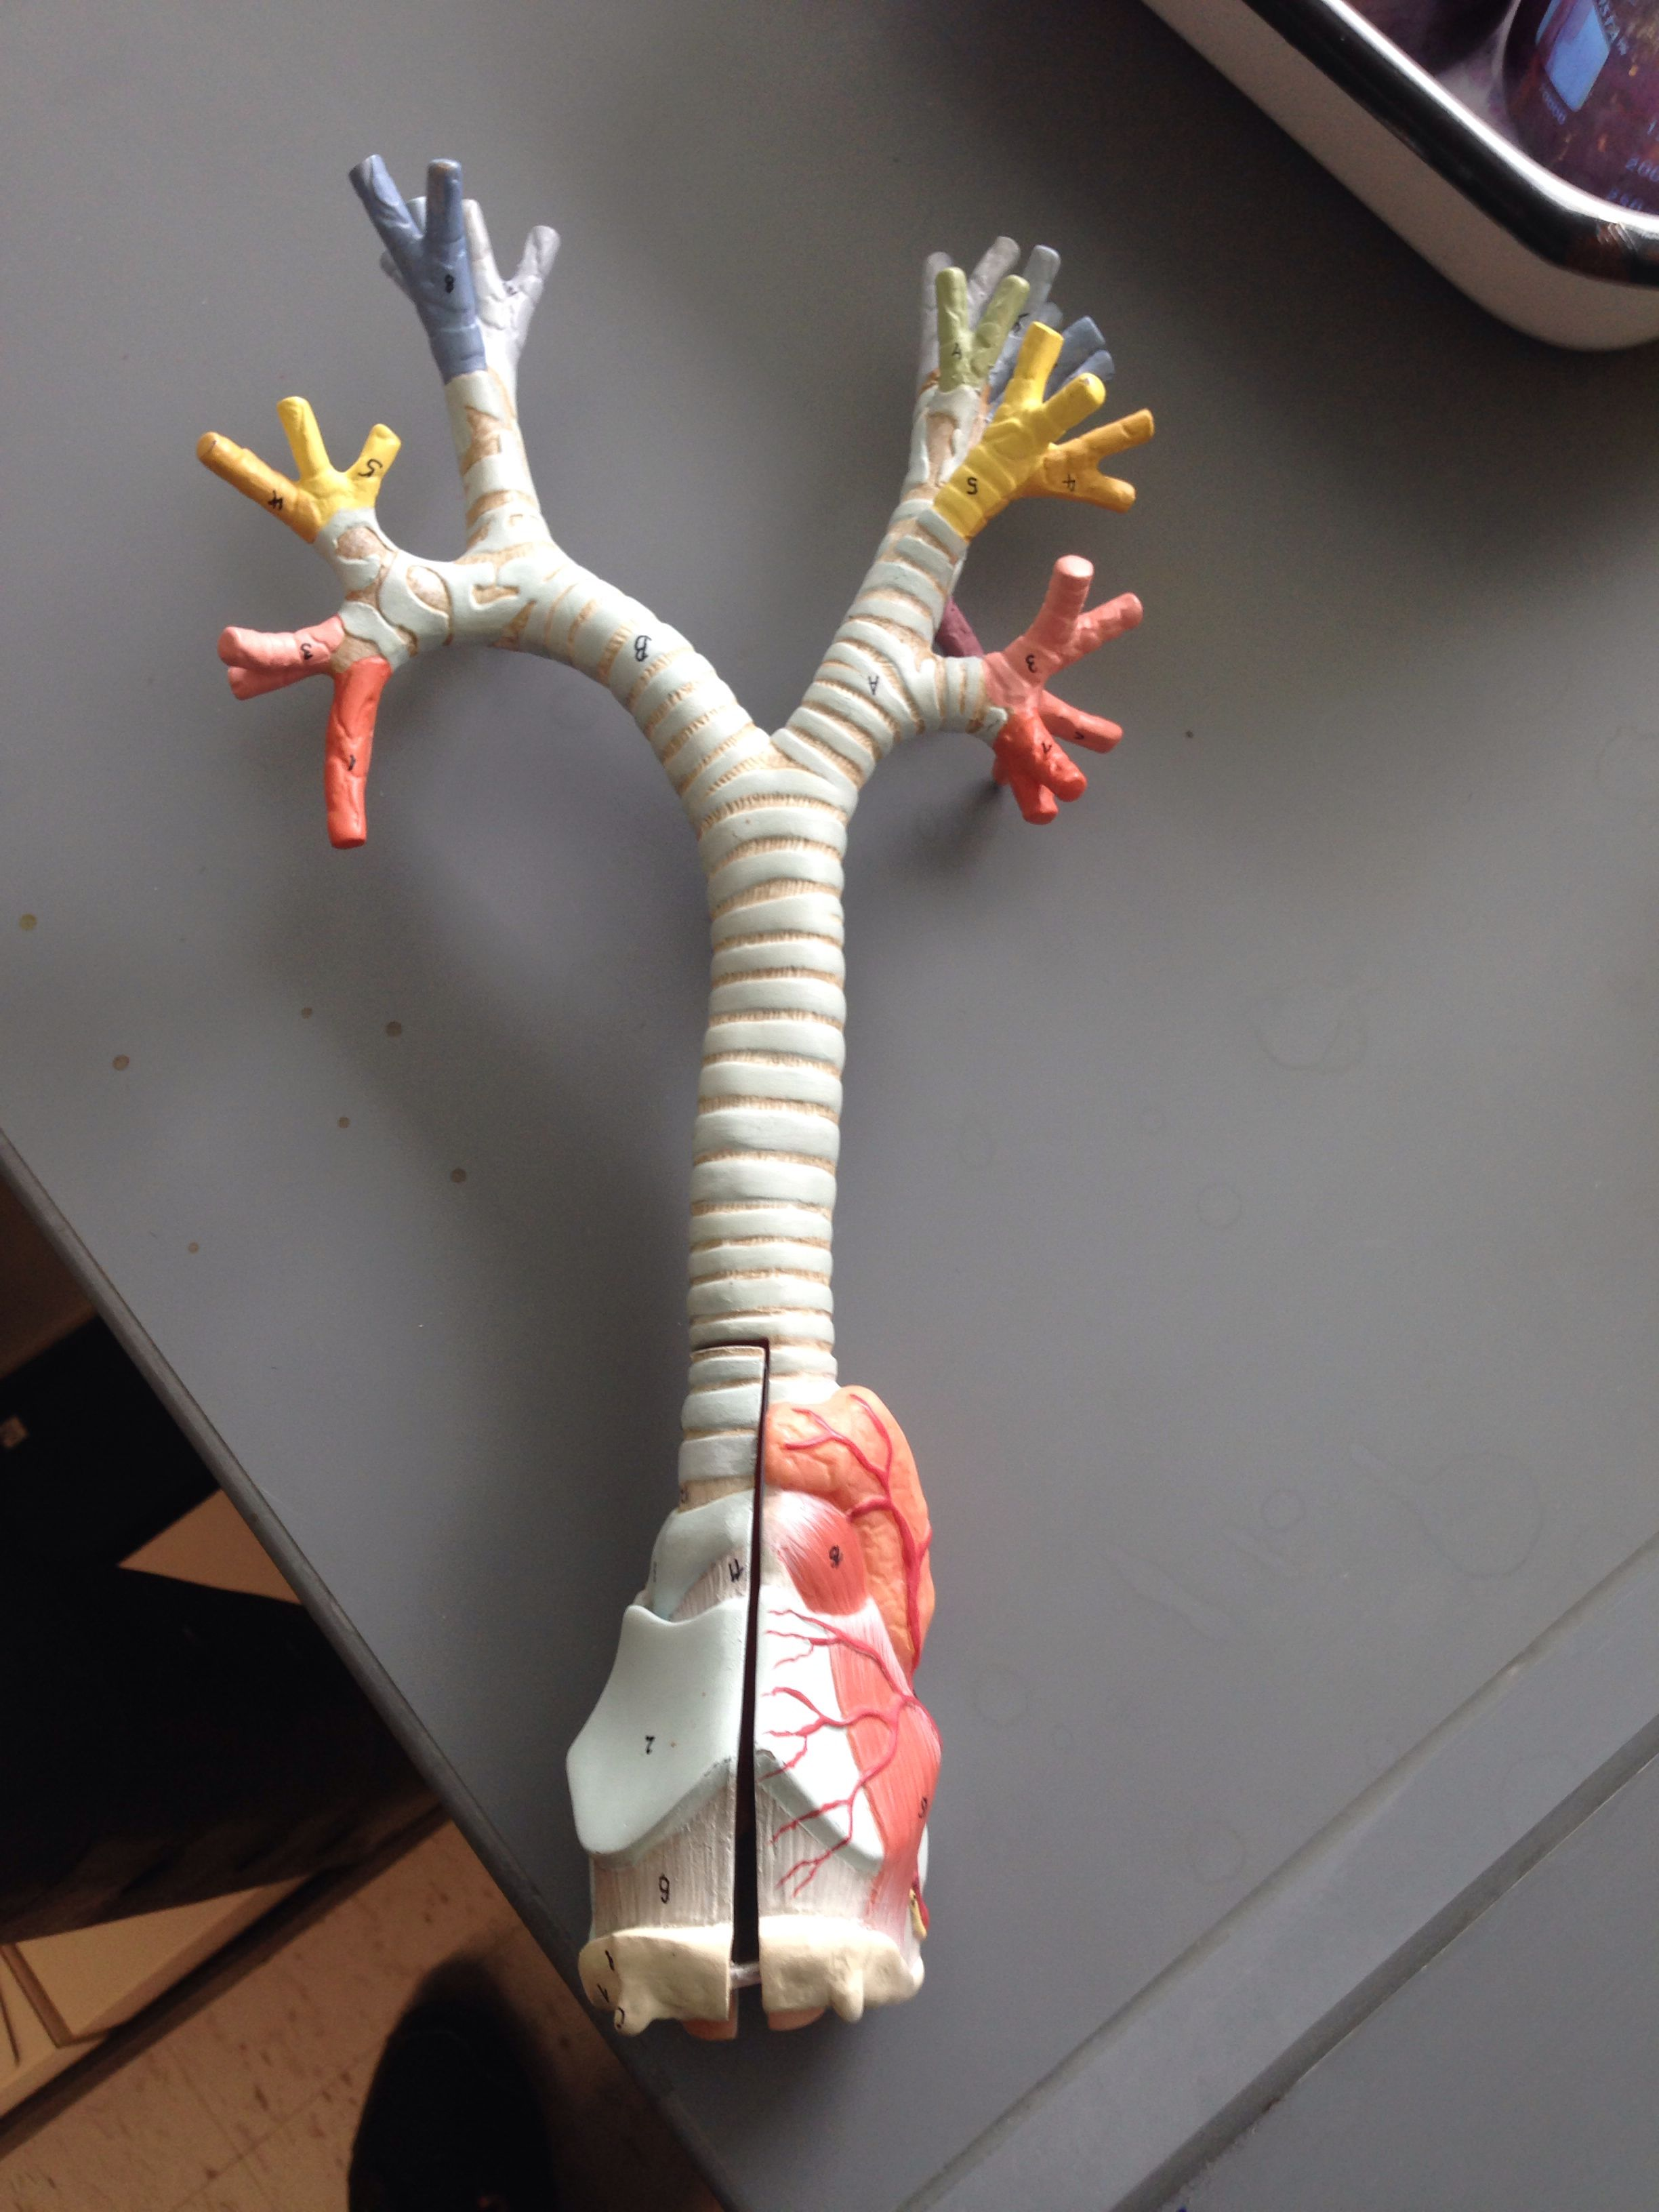 Another bronchial tree | Anatomy and physiology 2 pictures | Pinterest